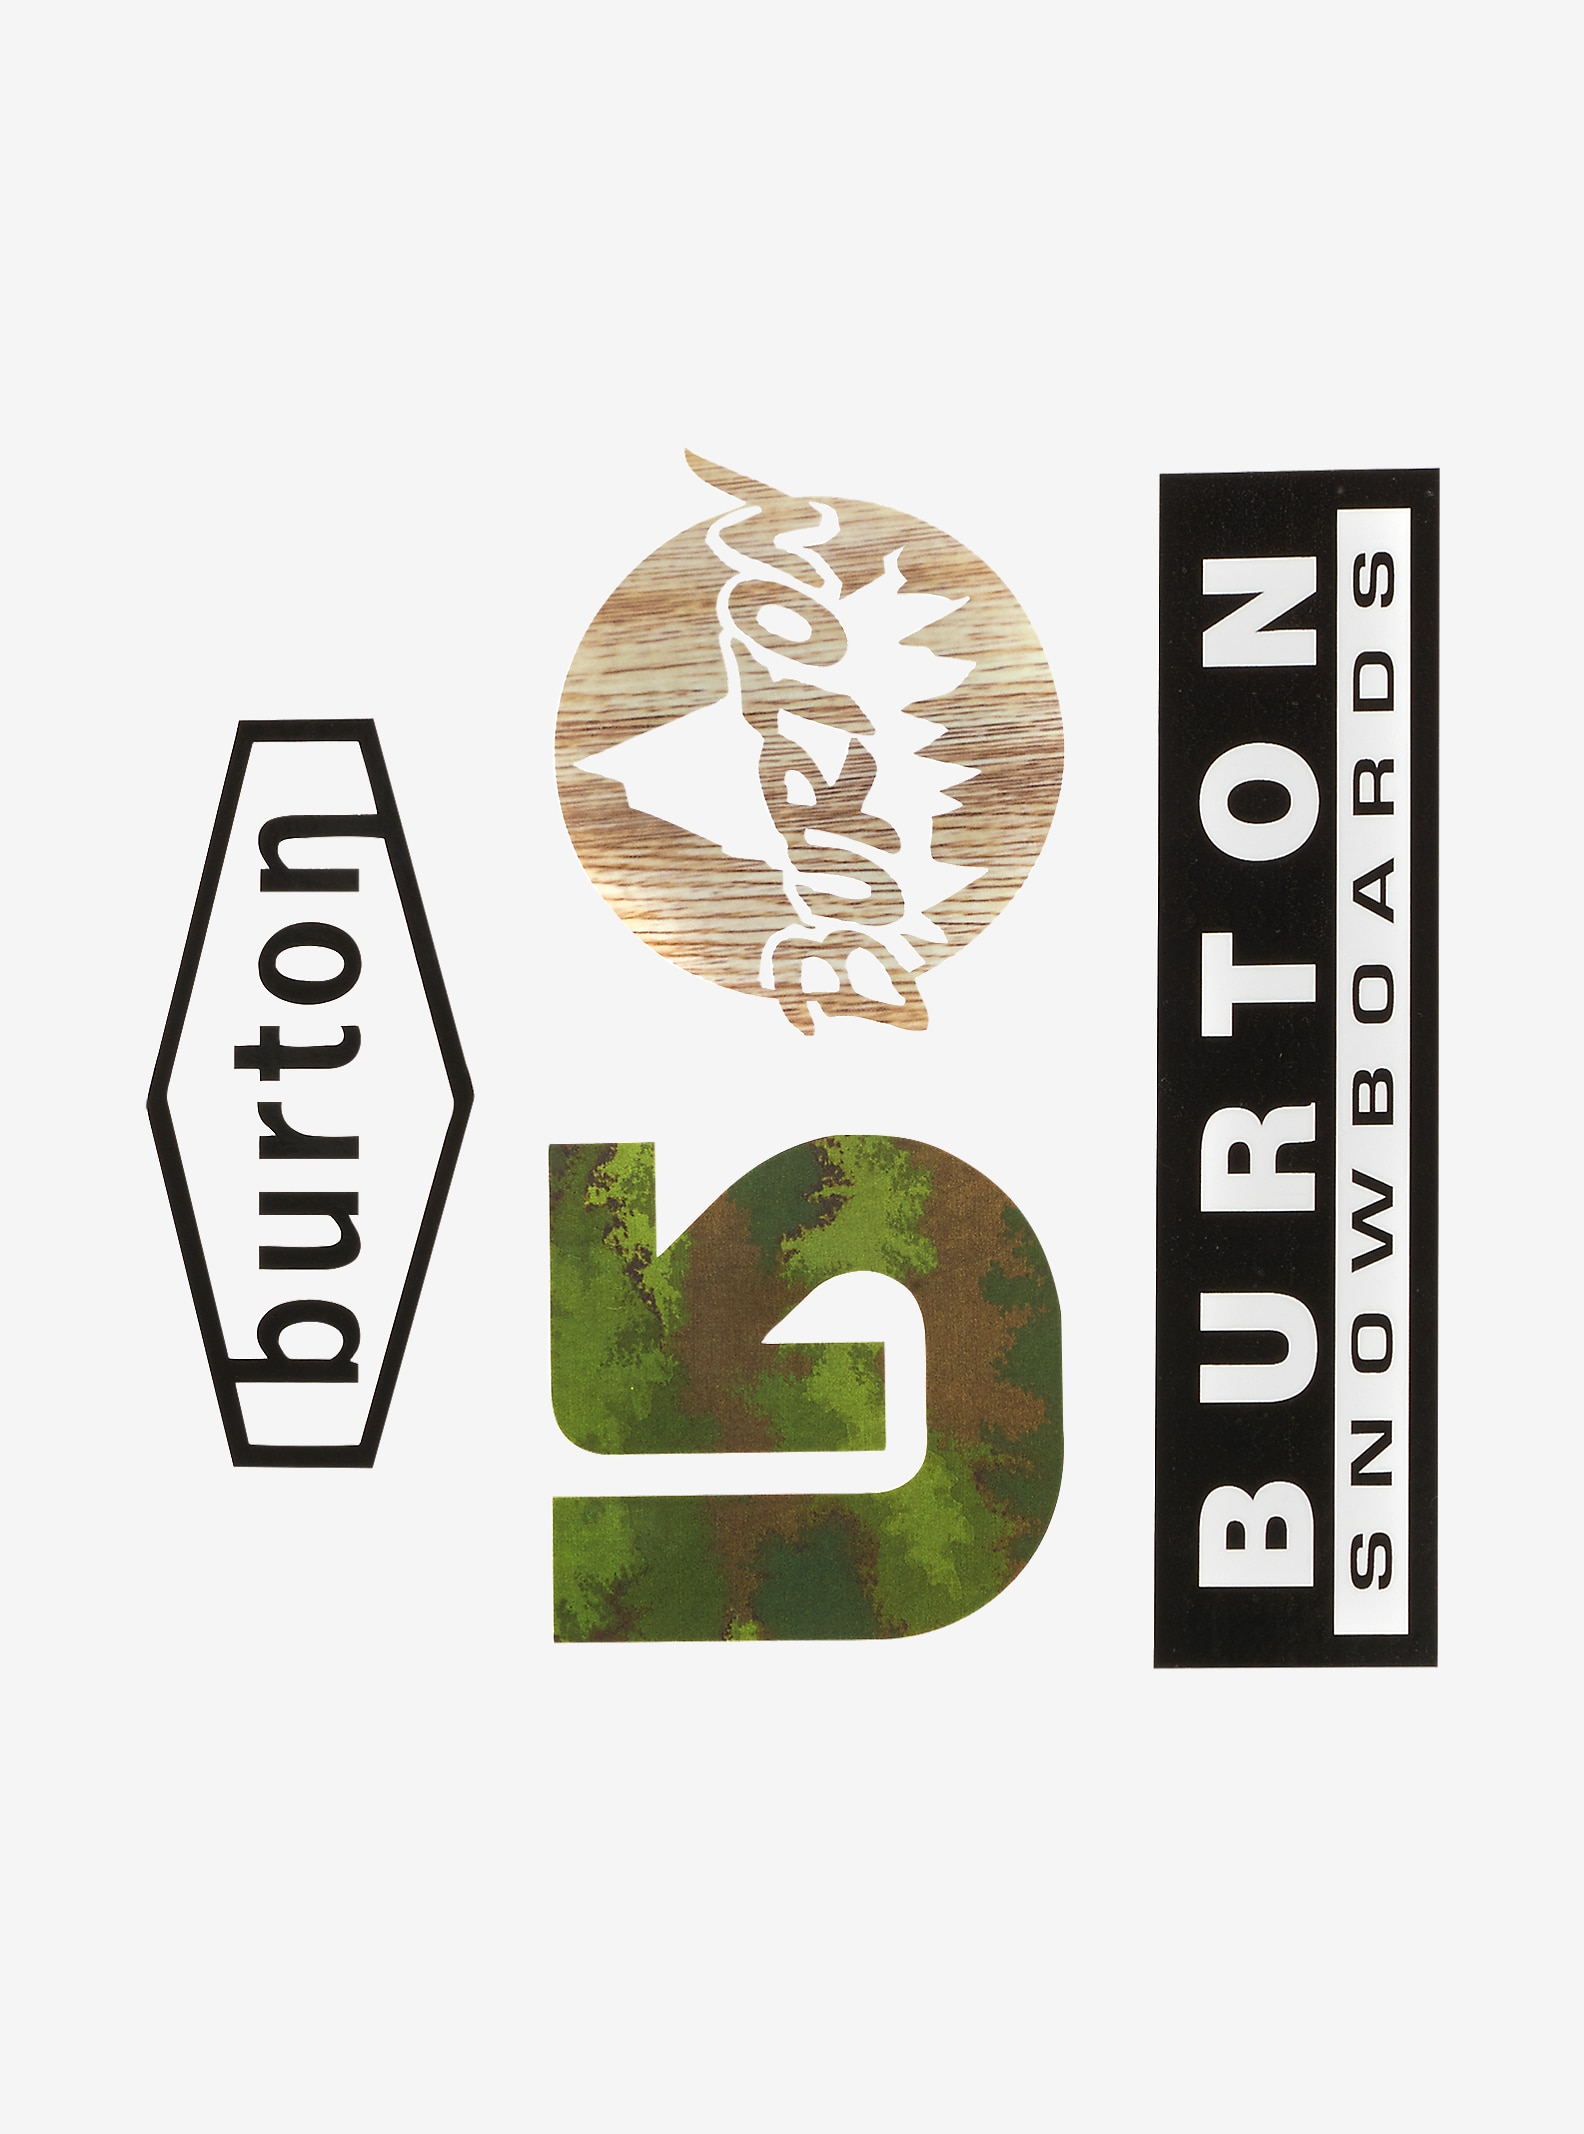 Burton Throwback Sticker Pack shown in NA